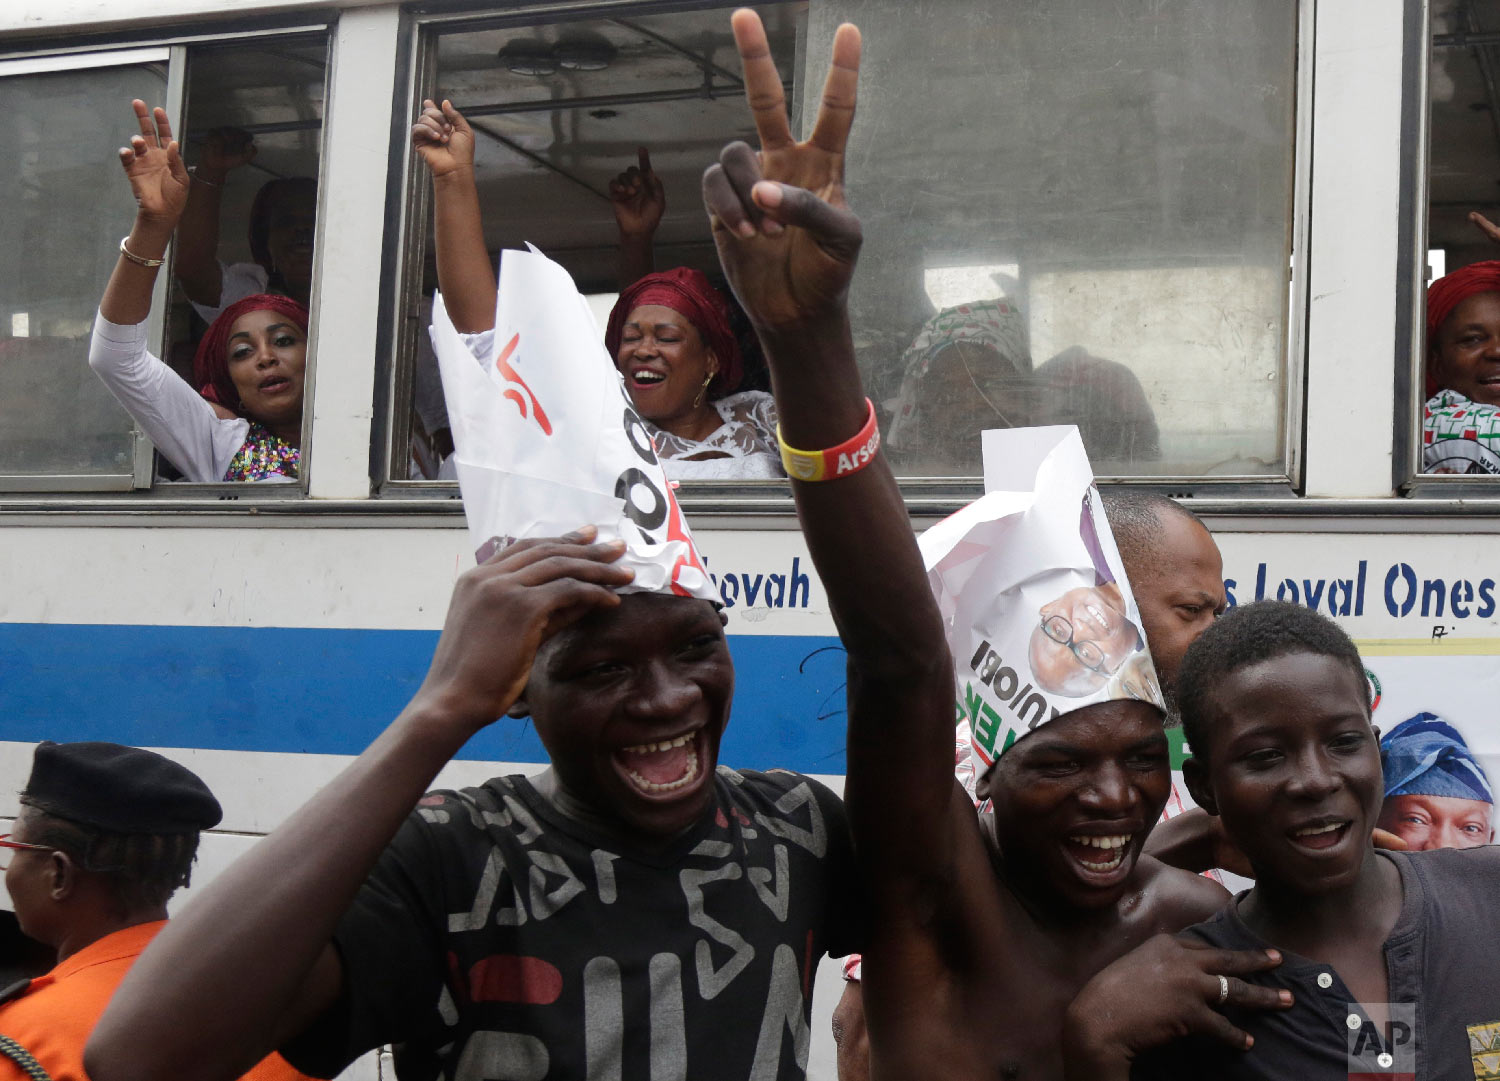 Supporters of Nigerian presidential candidate Atiku Abubakar, of the People's Democratic Party, chant slogans during an election campaign rally at the Tafawa Balewa Square, in Lagos, Nigeria, Feb. 12, 2019. (AP Photo/Sunday Alamba)